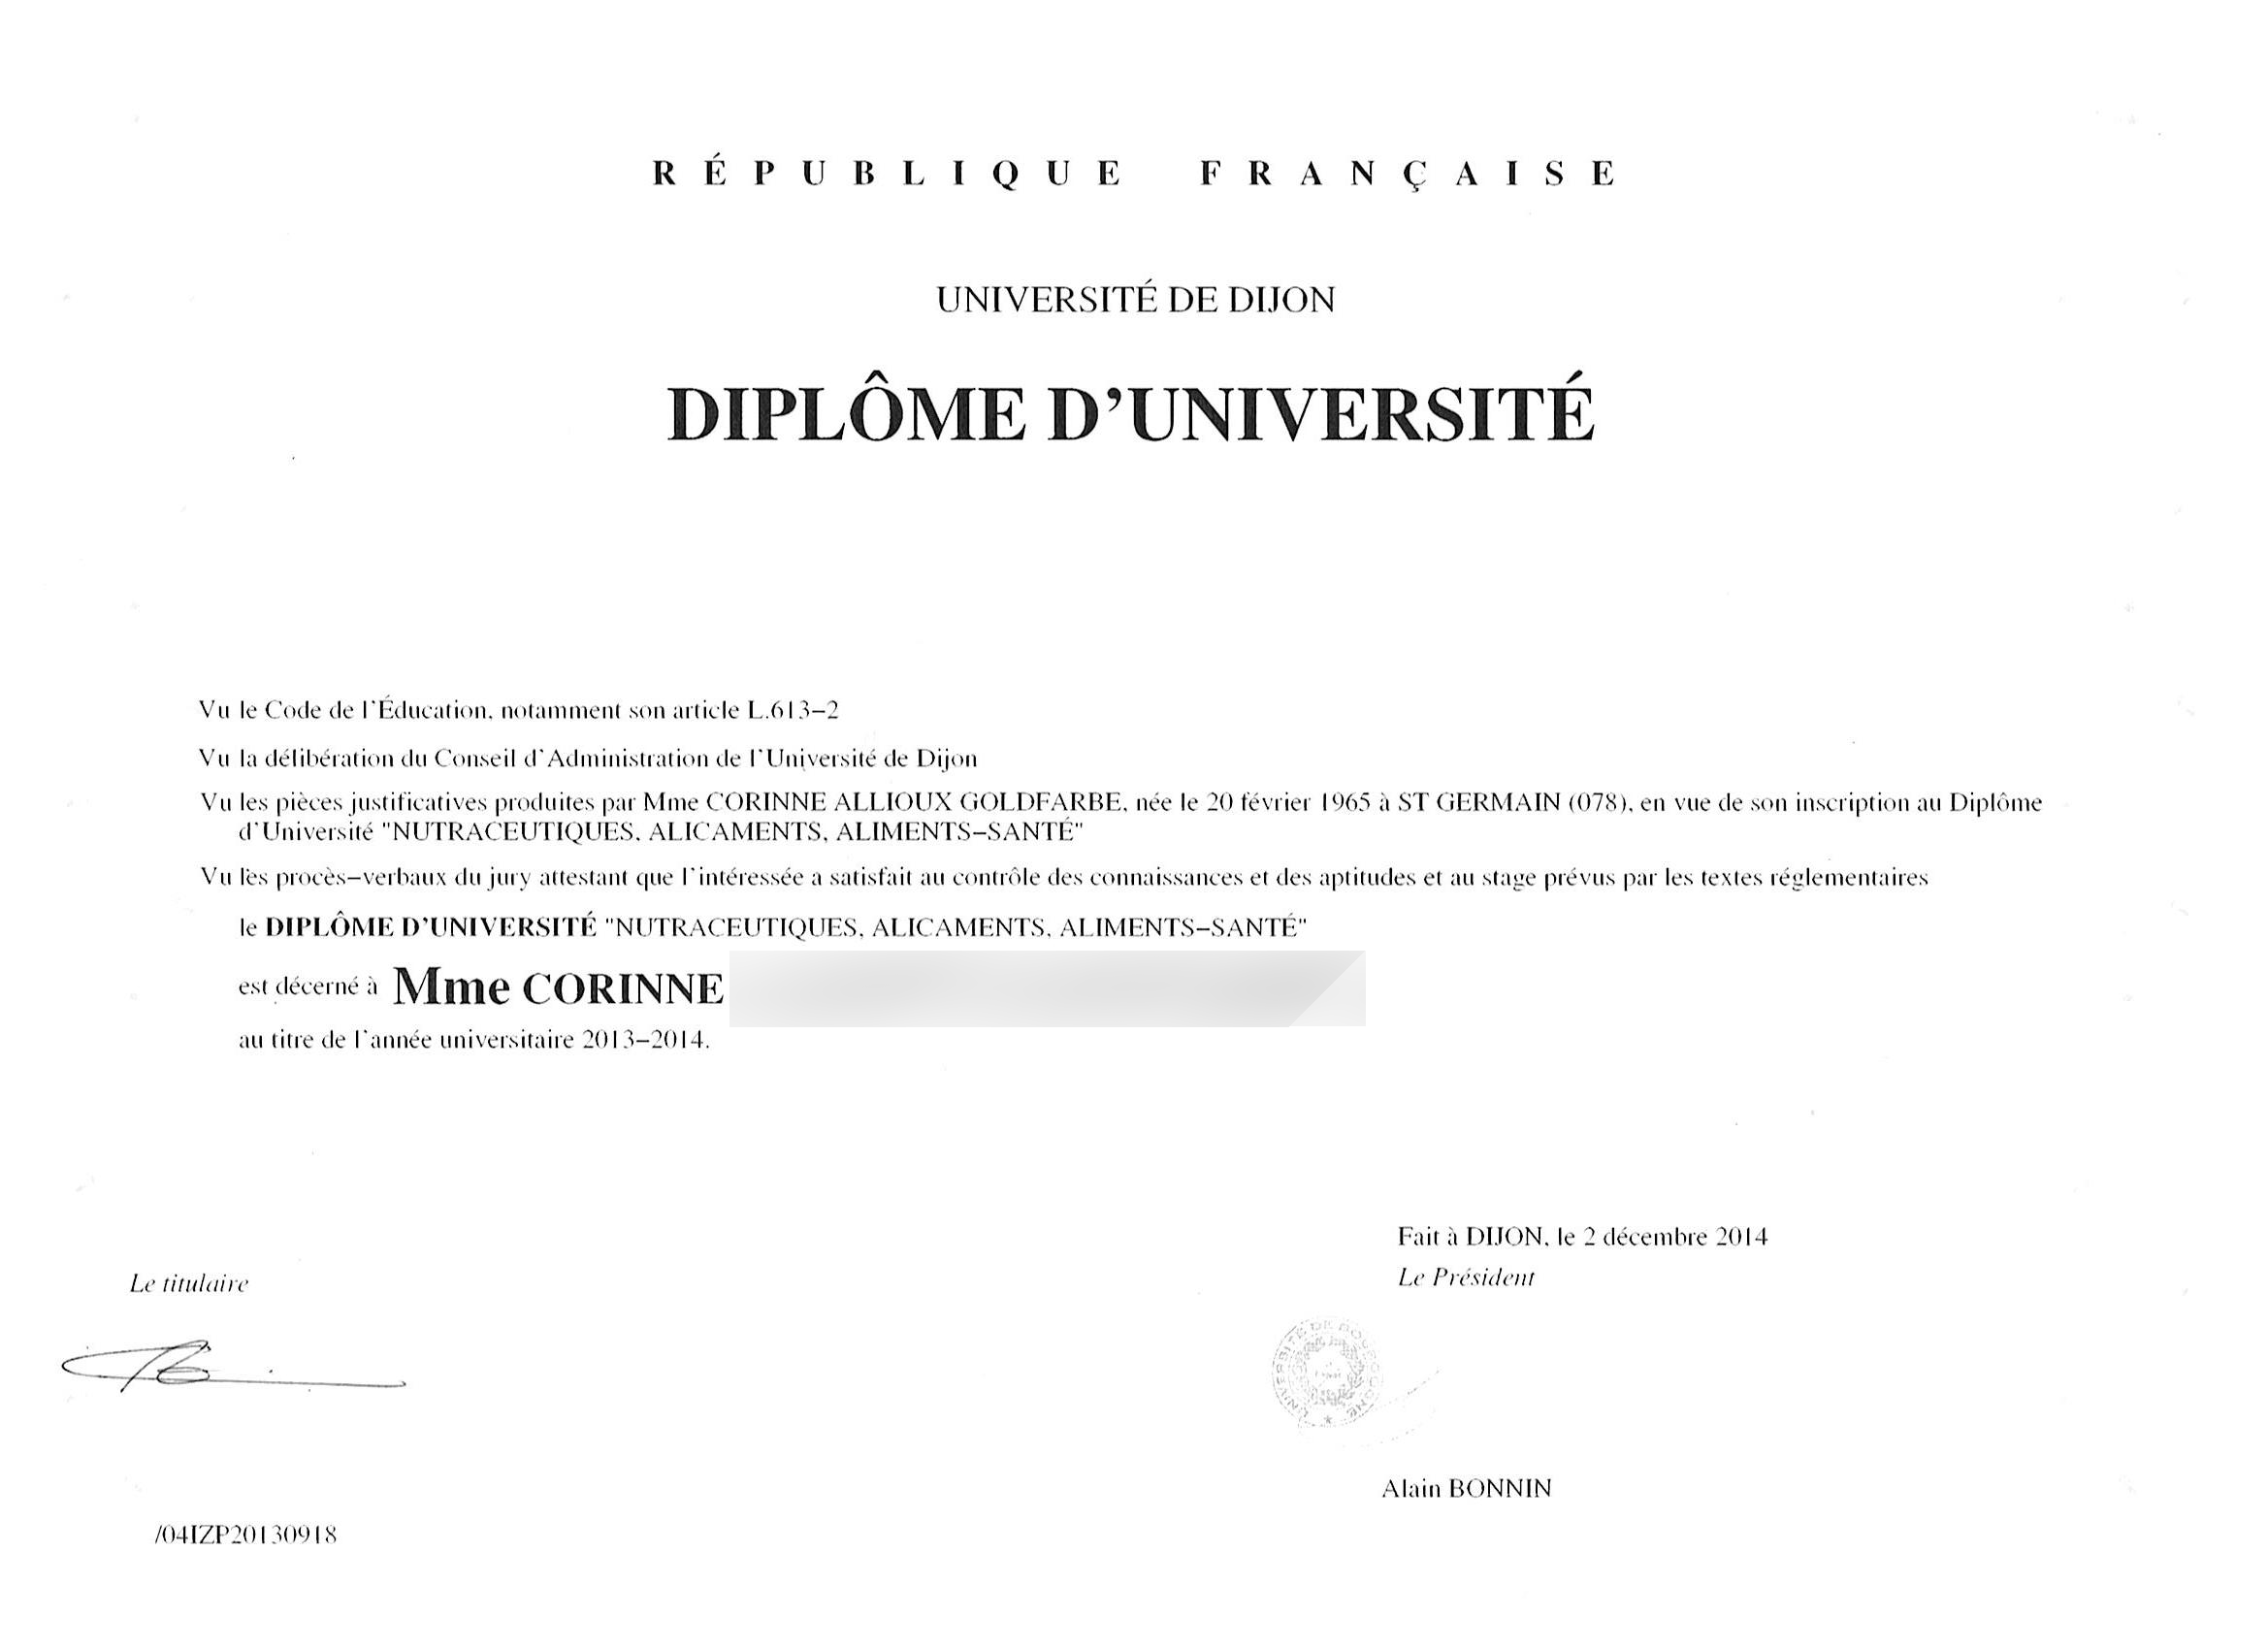 5a54c312ad429_Diplome DU Nutraceutique 001.jpg